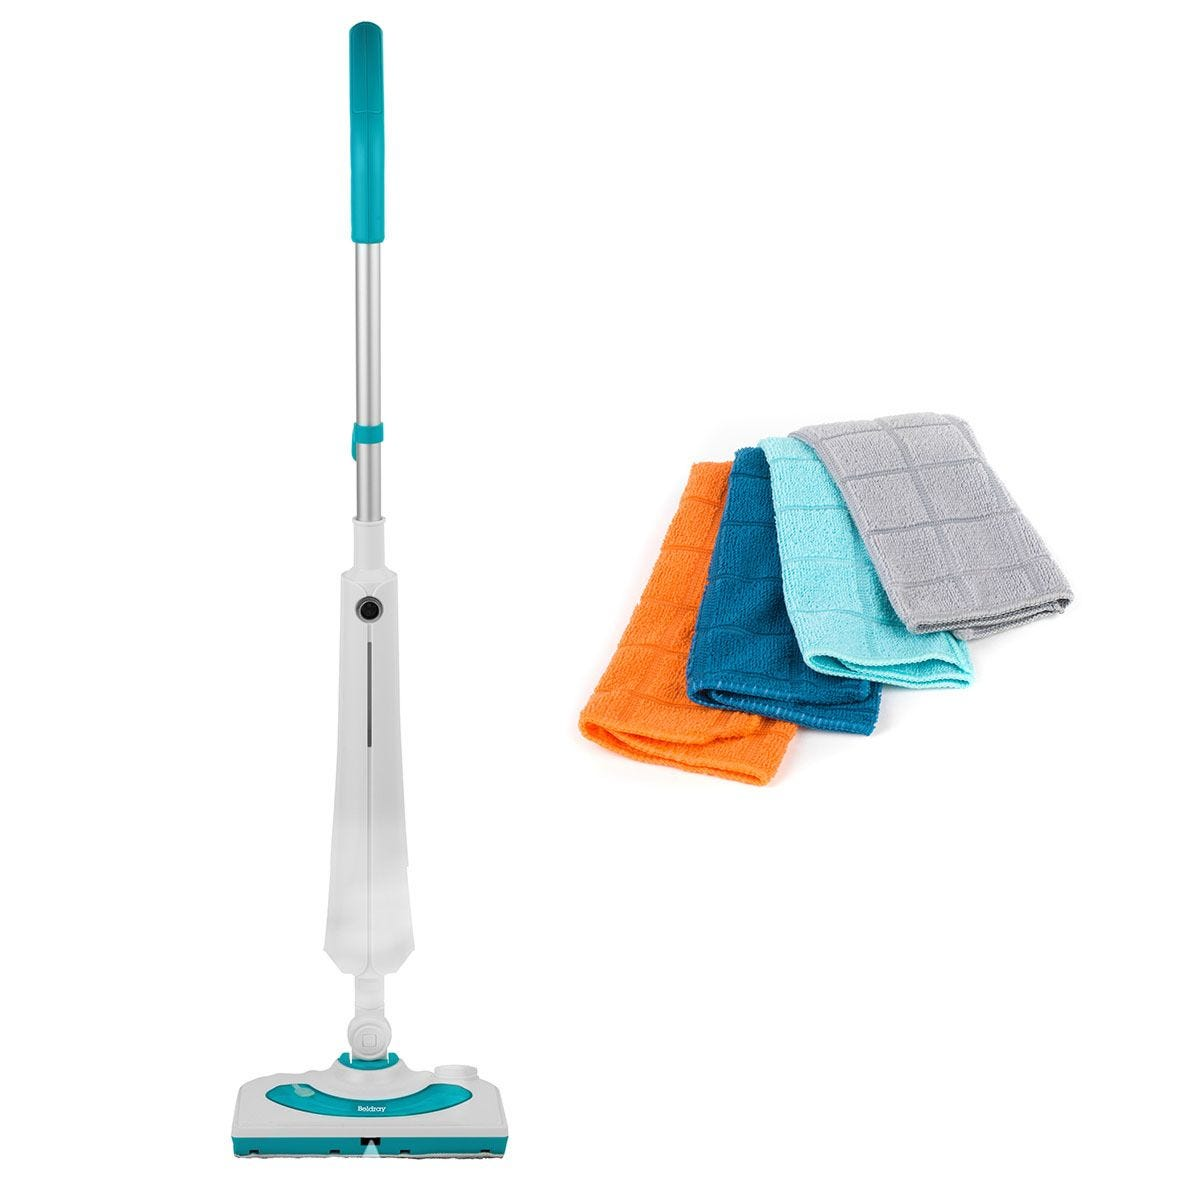 Beldray COMBO-7091 1300W Rectangular Detergent Steam Cleaner with 4 Microfibre Dusting Cloths - Multi